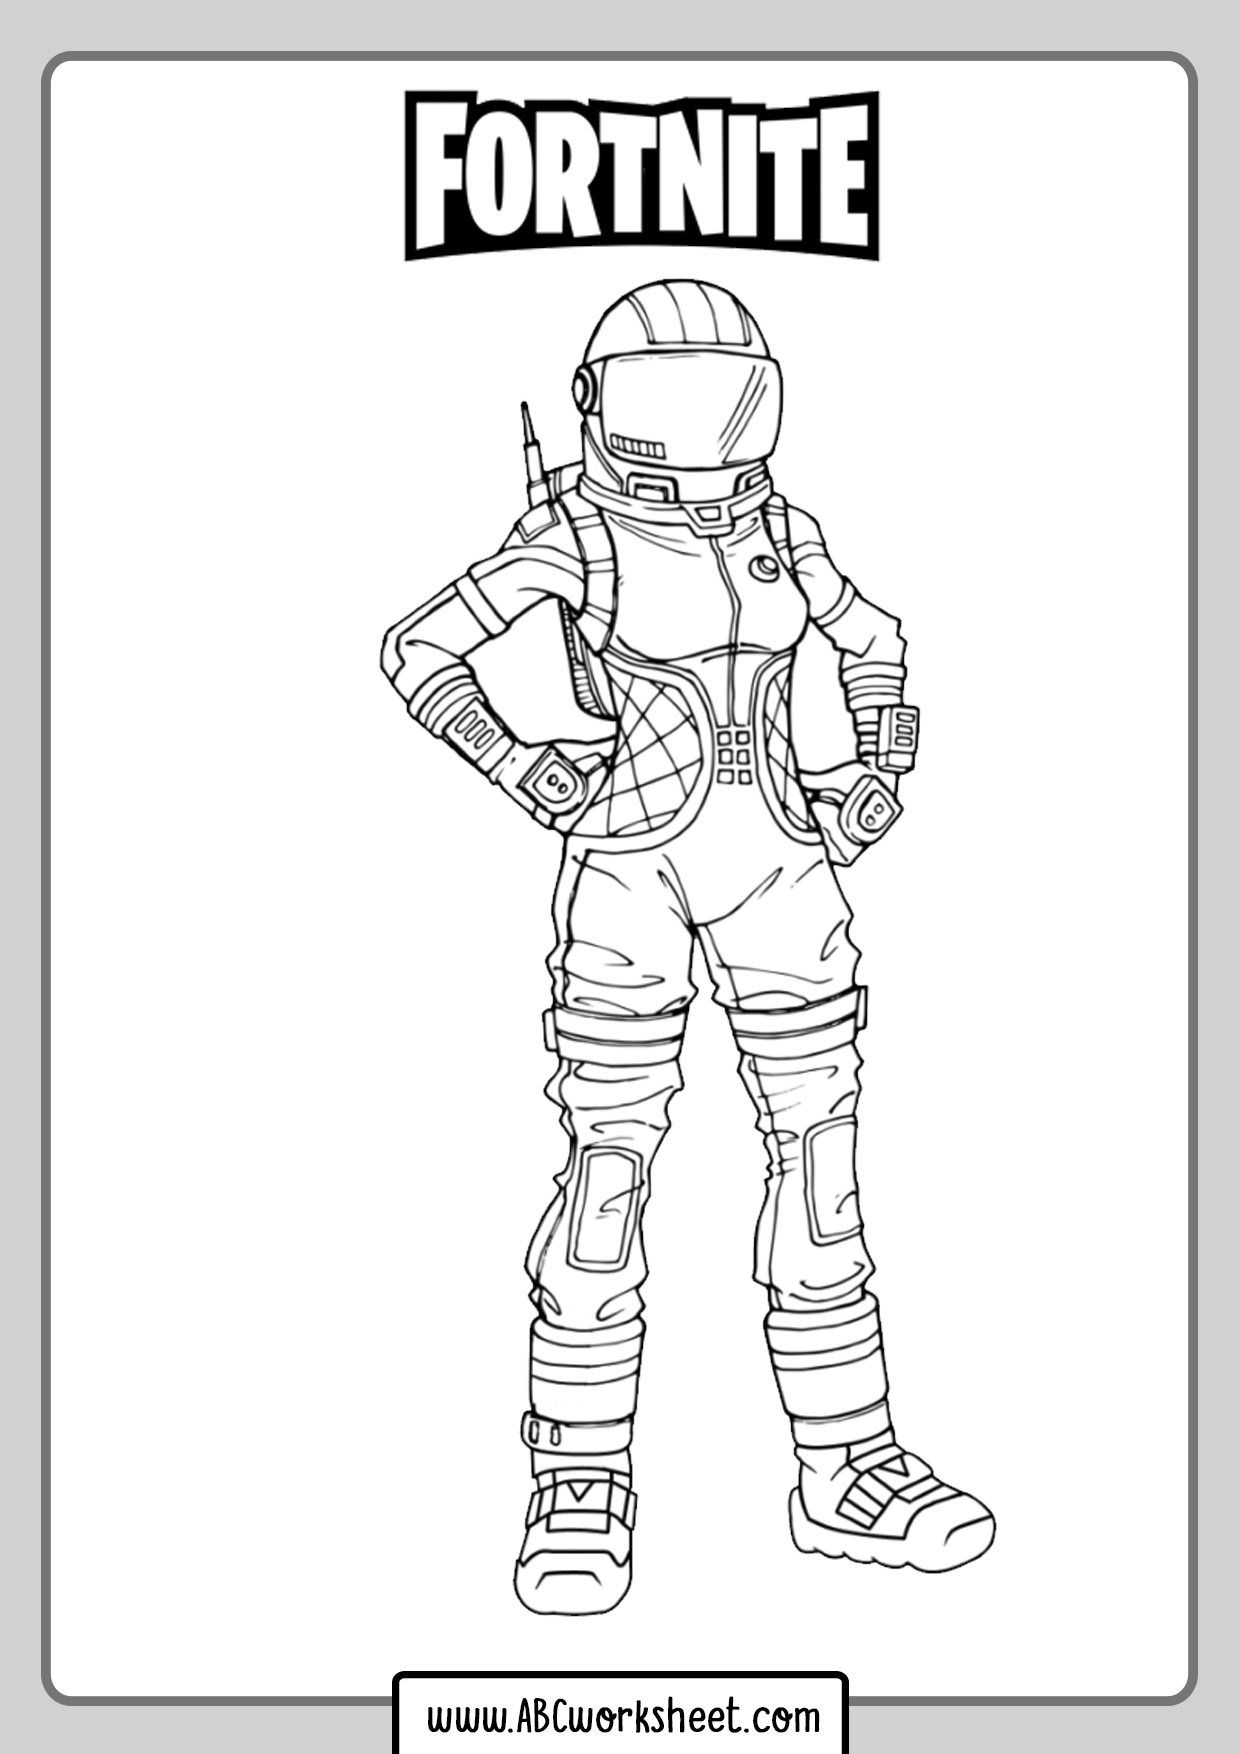 Girl Skin Fortnite Coloring Page - ABC Worksheet